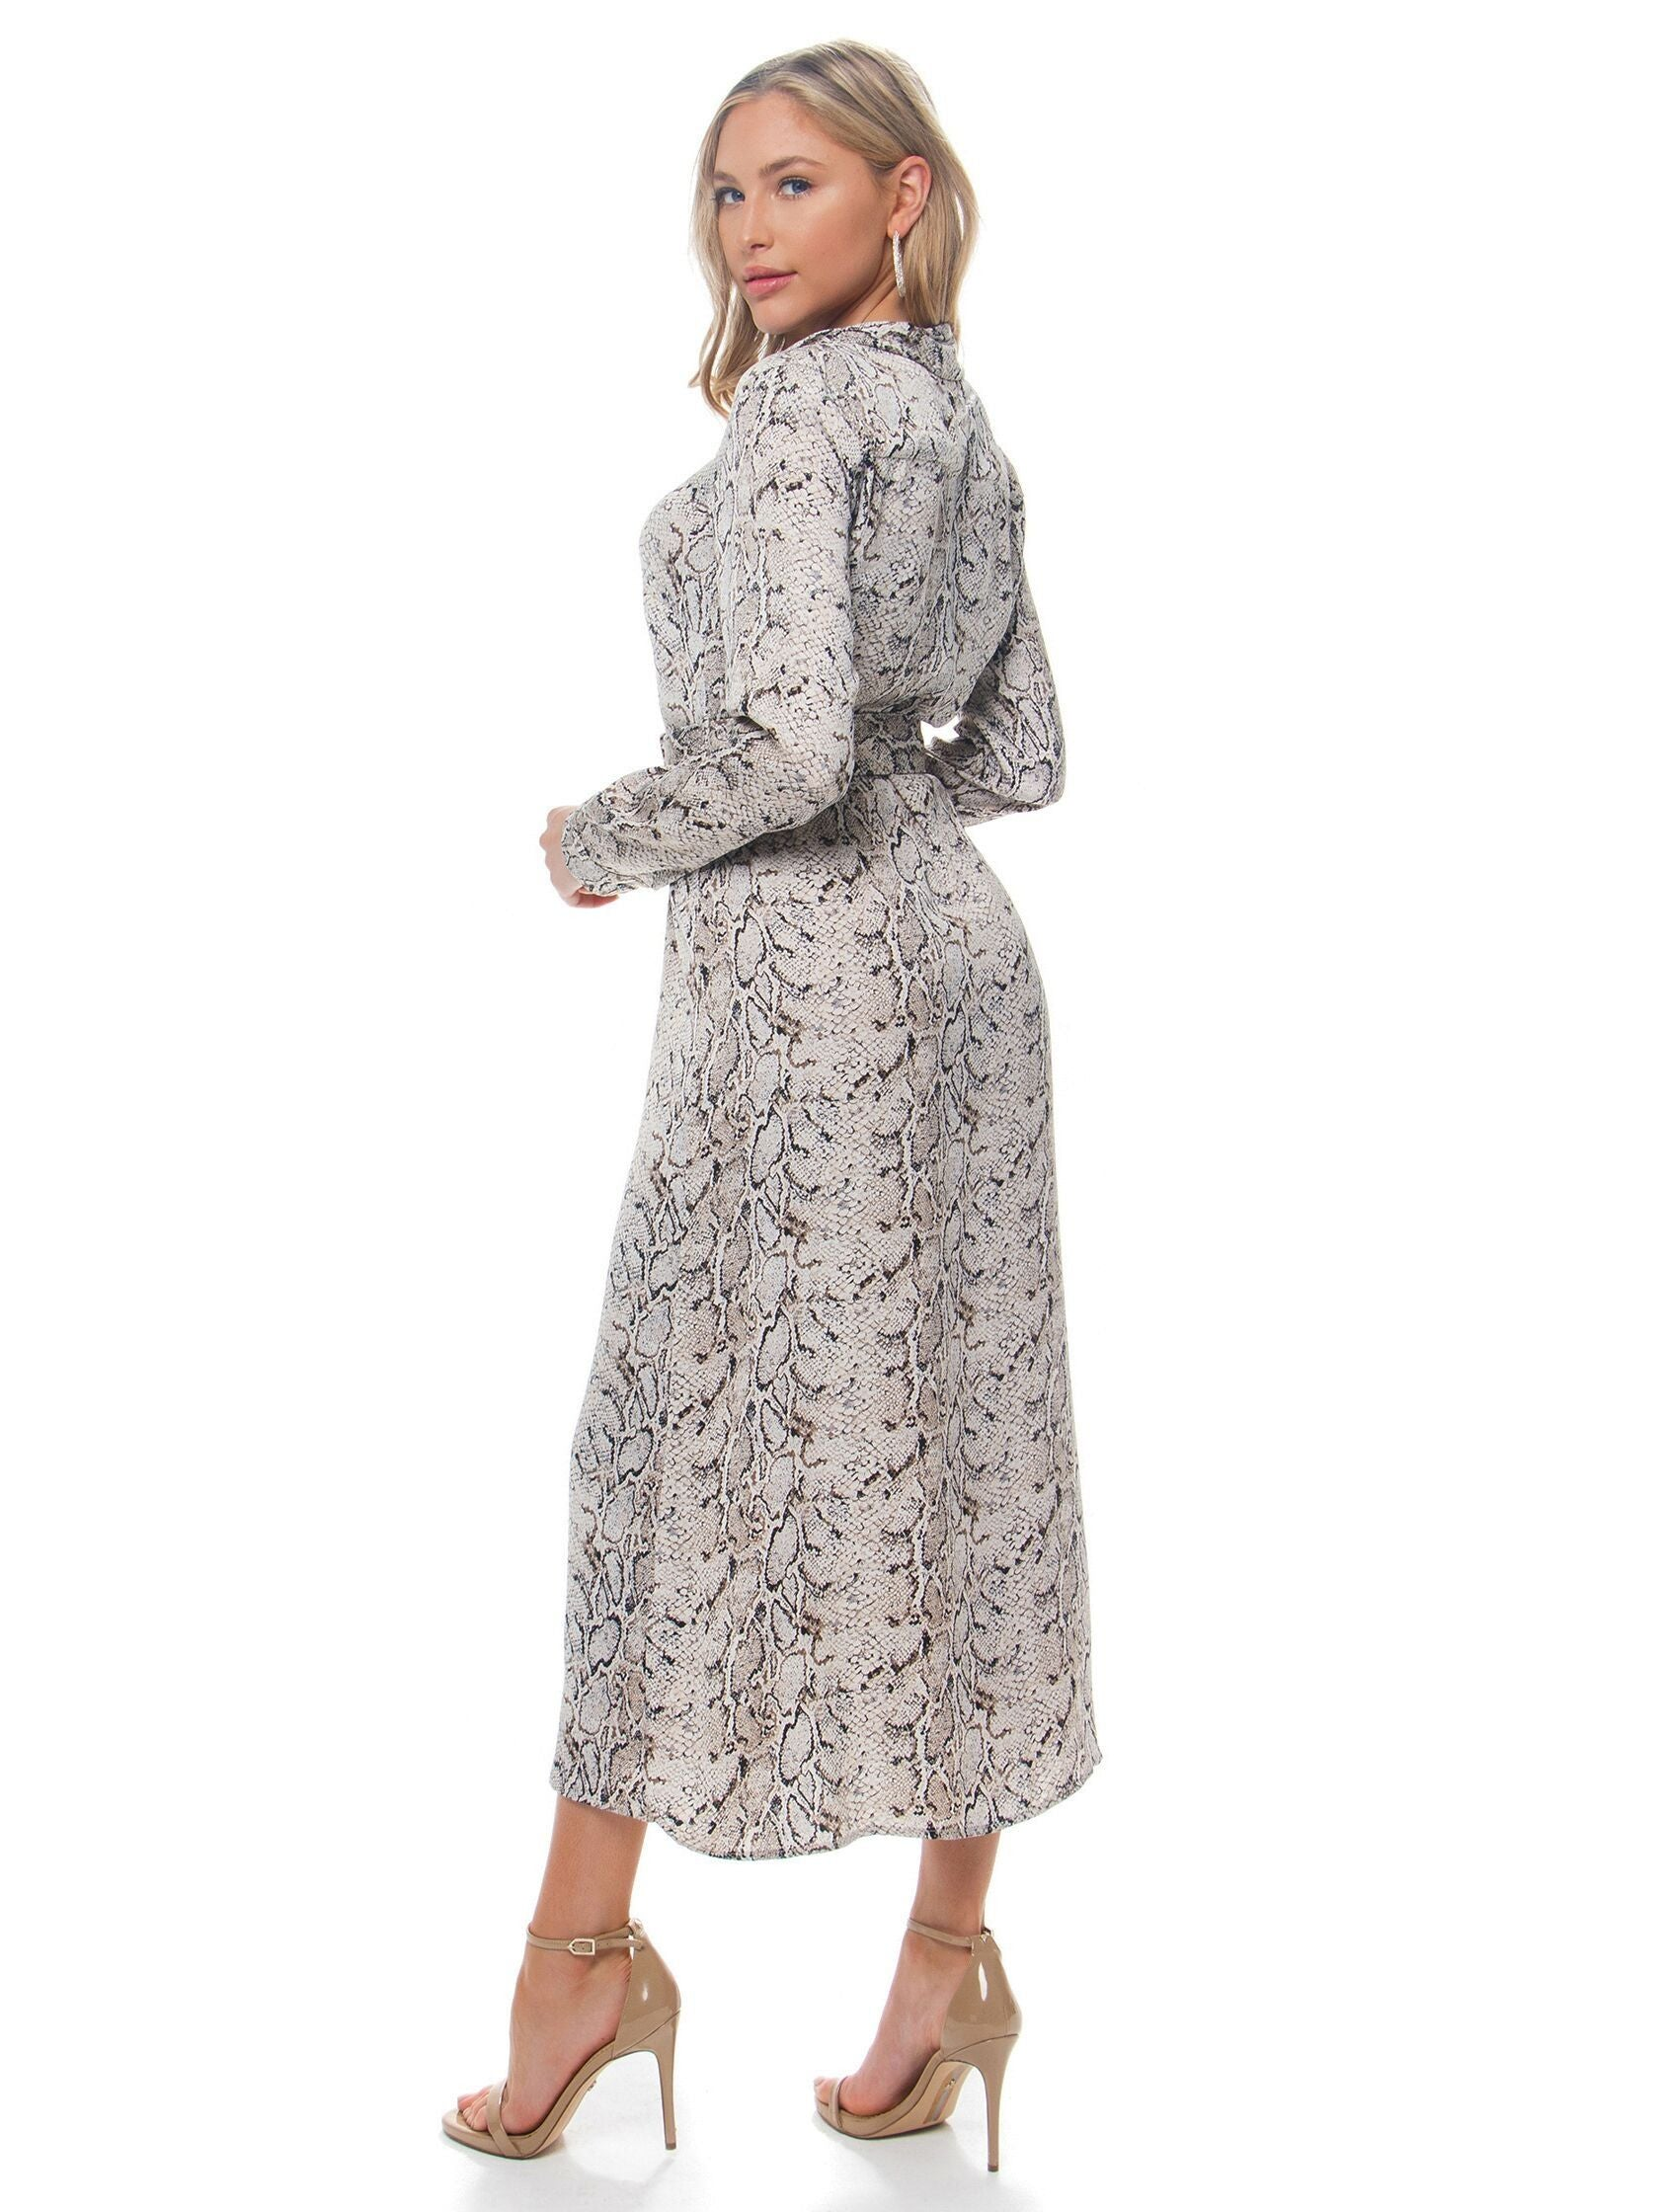 Women outfit in a dress rental from BARDOT called Snake Shirt Dress